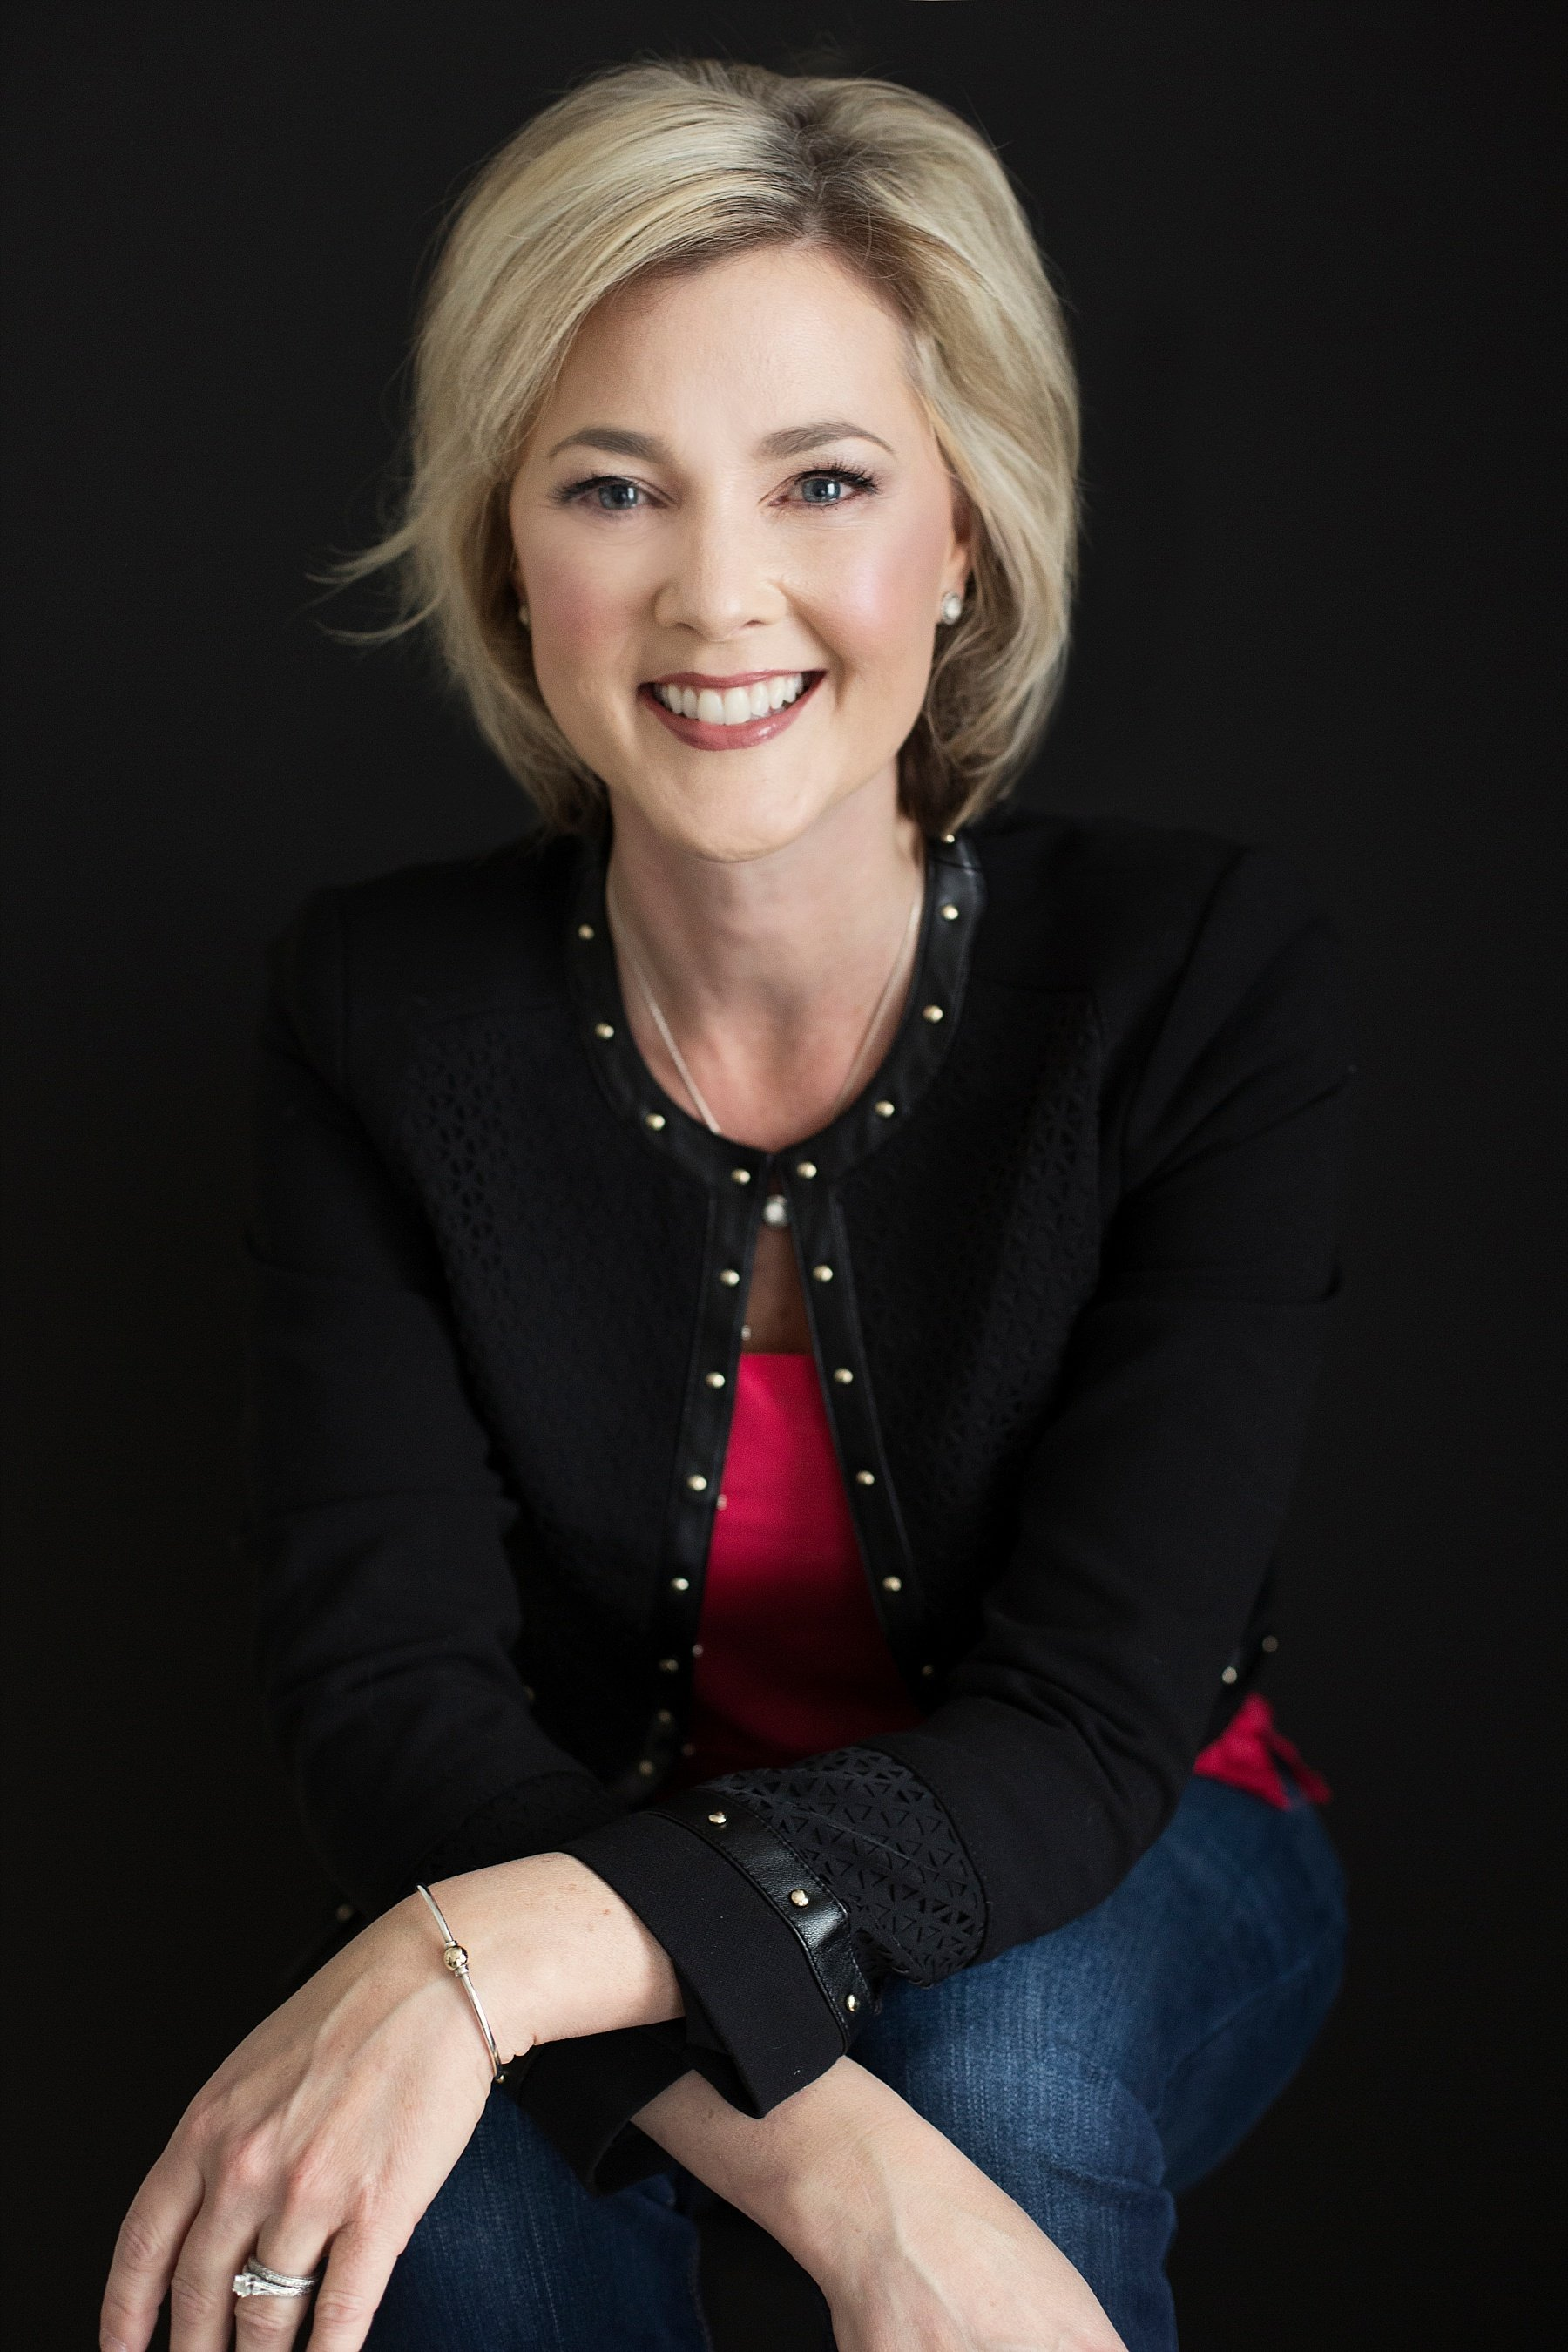 Allison Dunn in a black cardigan smiling as she sits and poses against a black background.